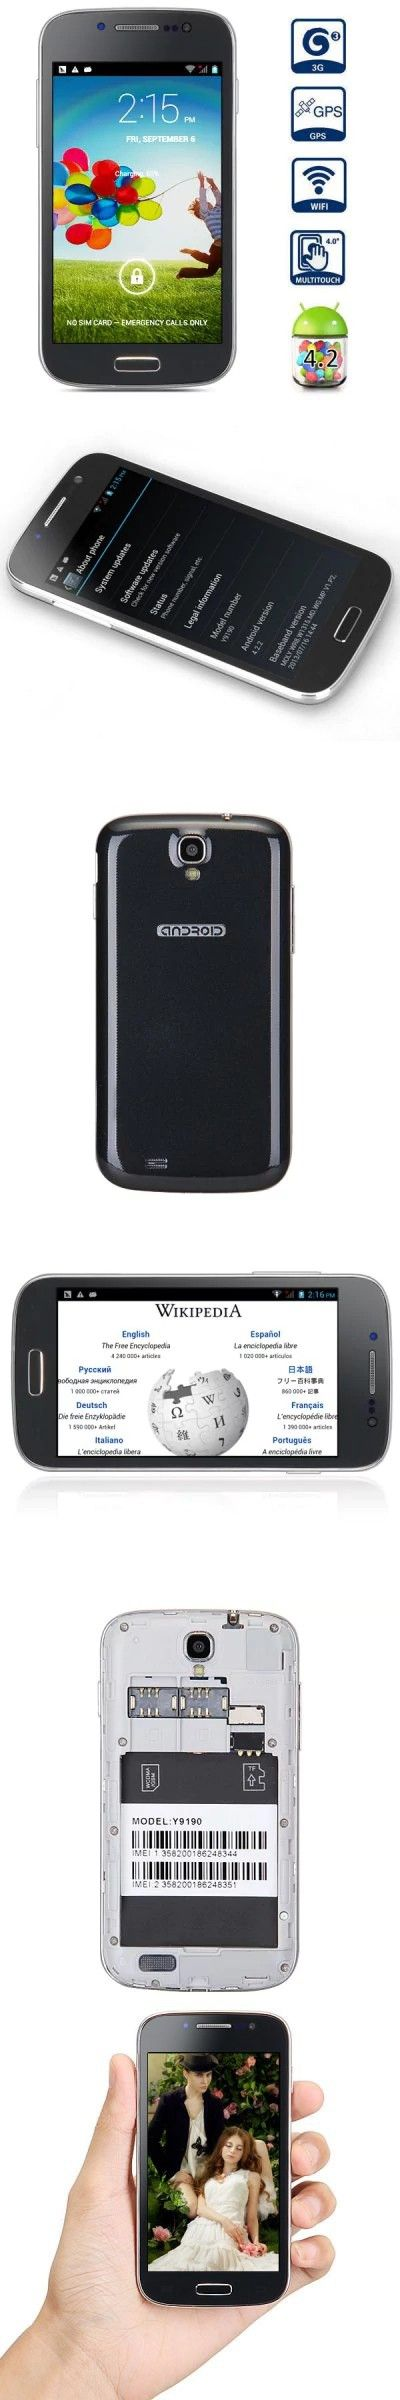 Y9190 4.0 inch Android 4.2 3G Smart Phone MTK6572 Dual Core 1.2GHz WVGA IPS Screen WiFi GPS 5MP Camera -$70.41